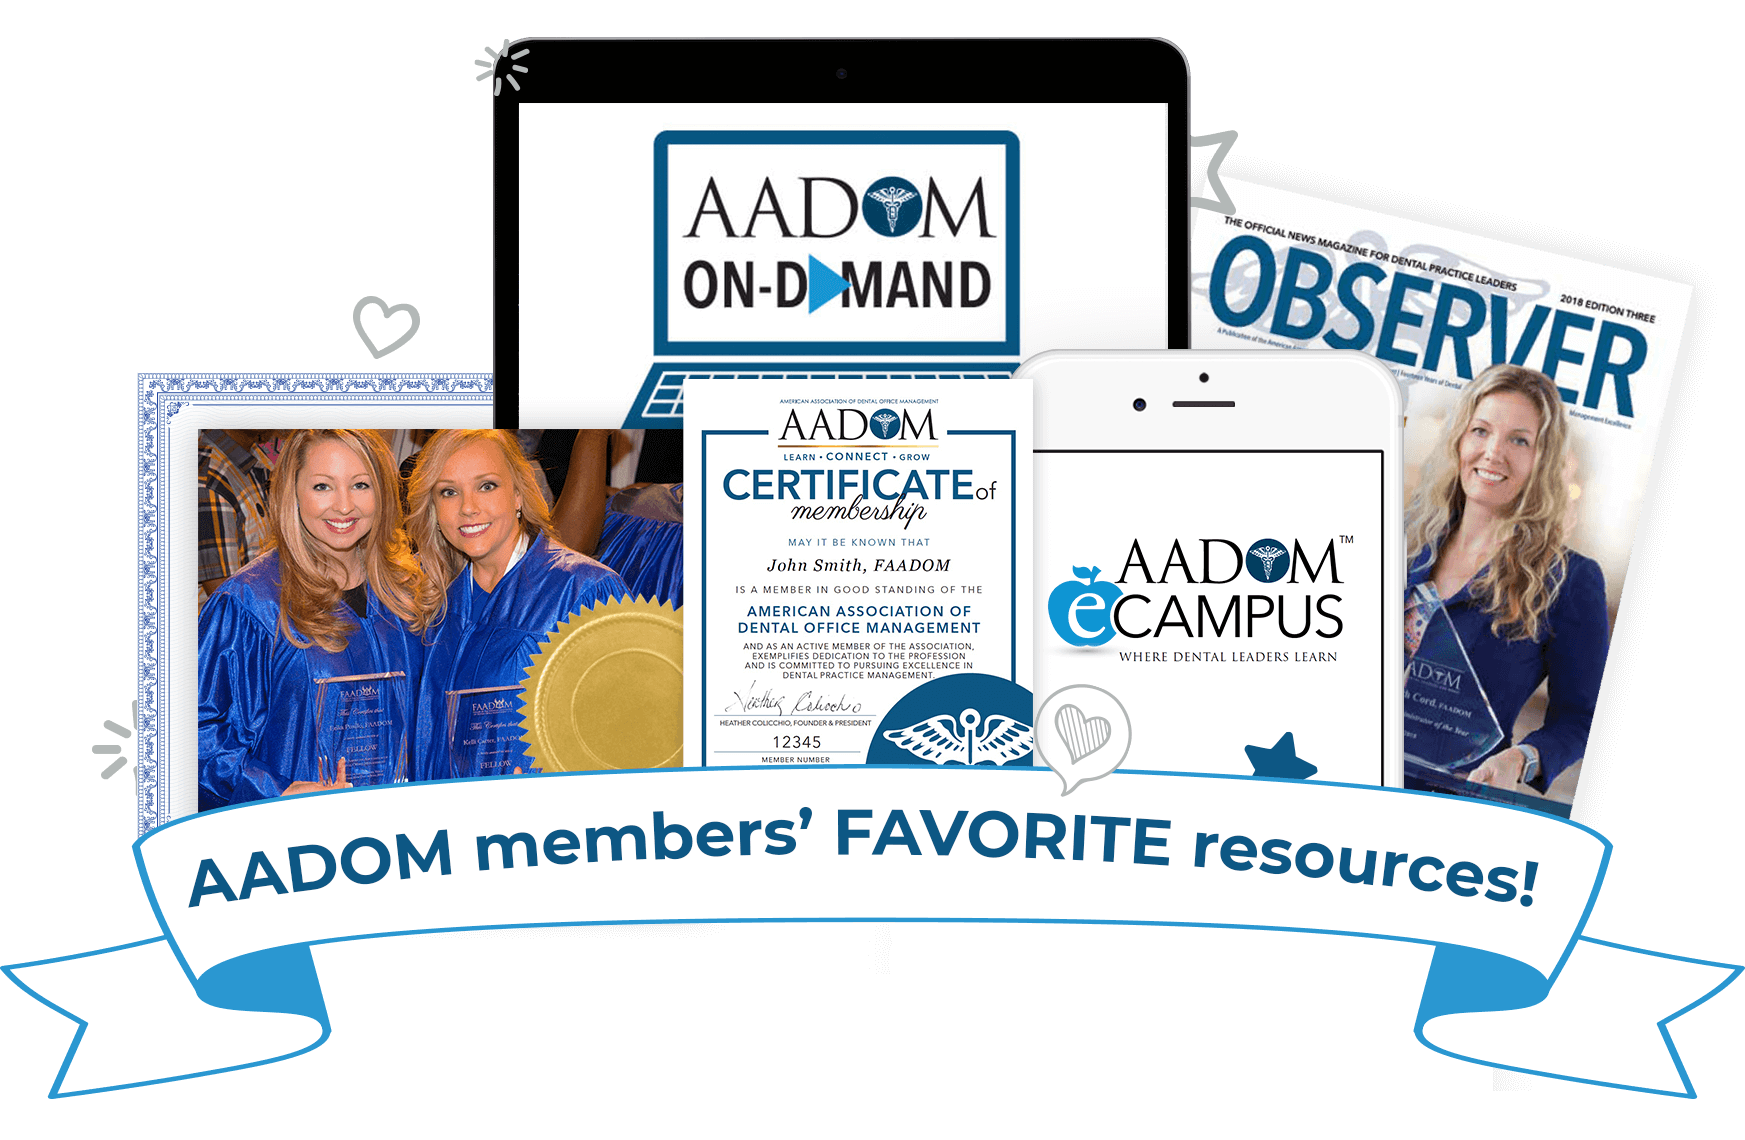 AADOM members' FAVORITE resources!